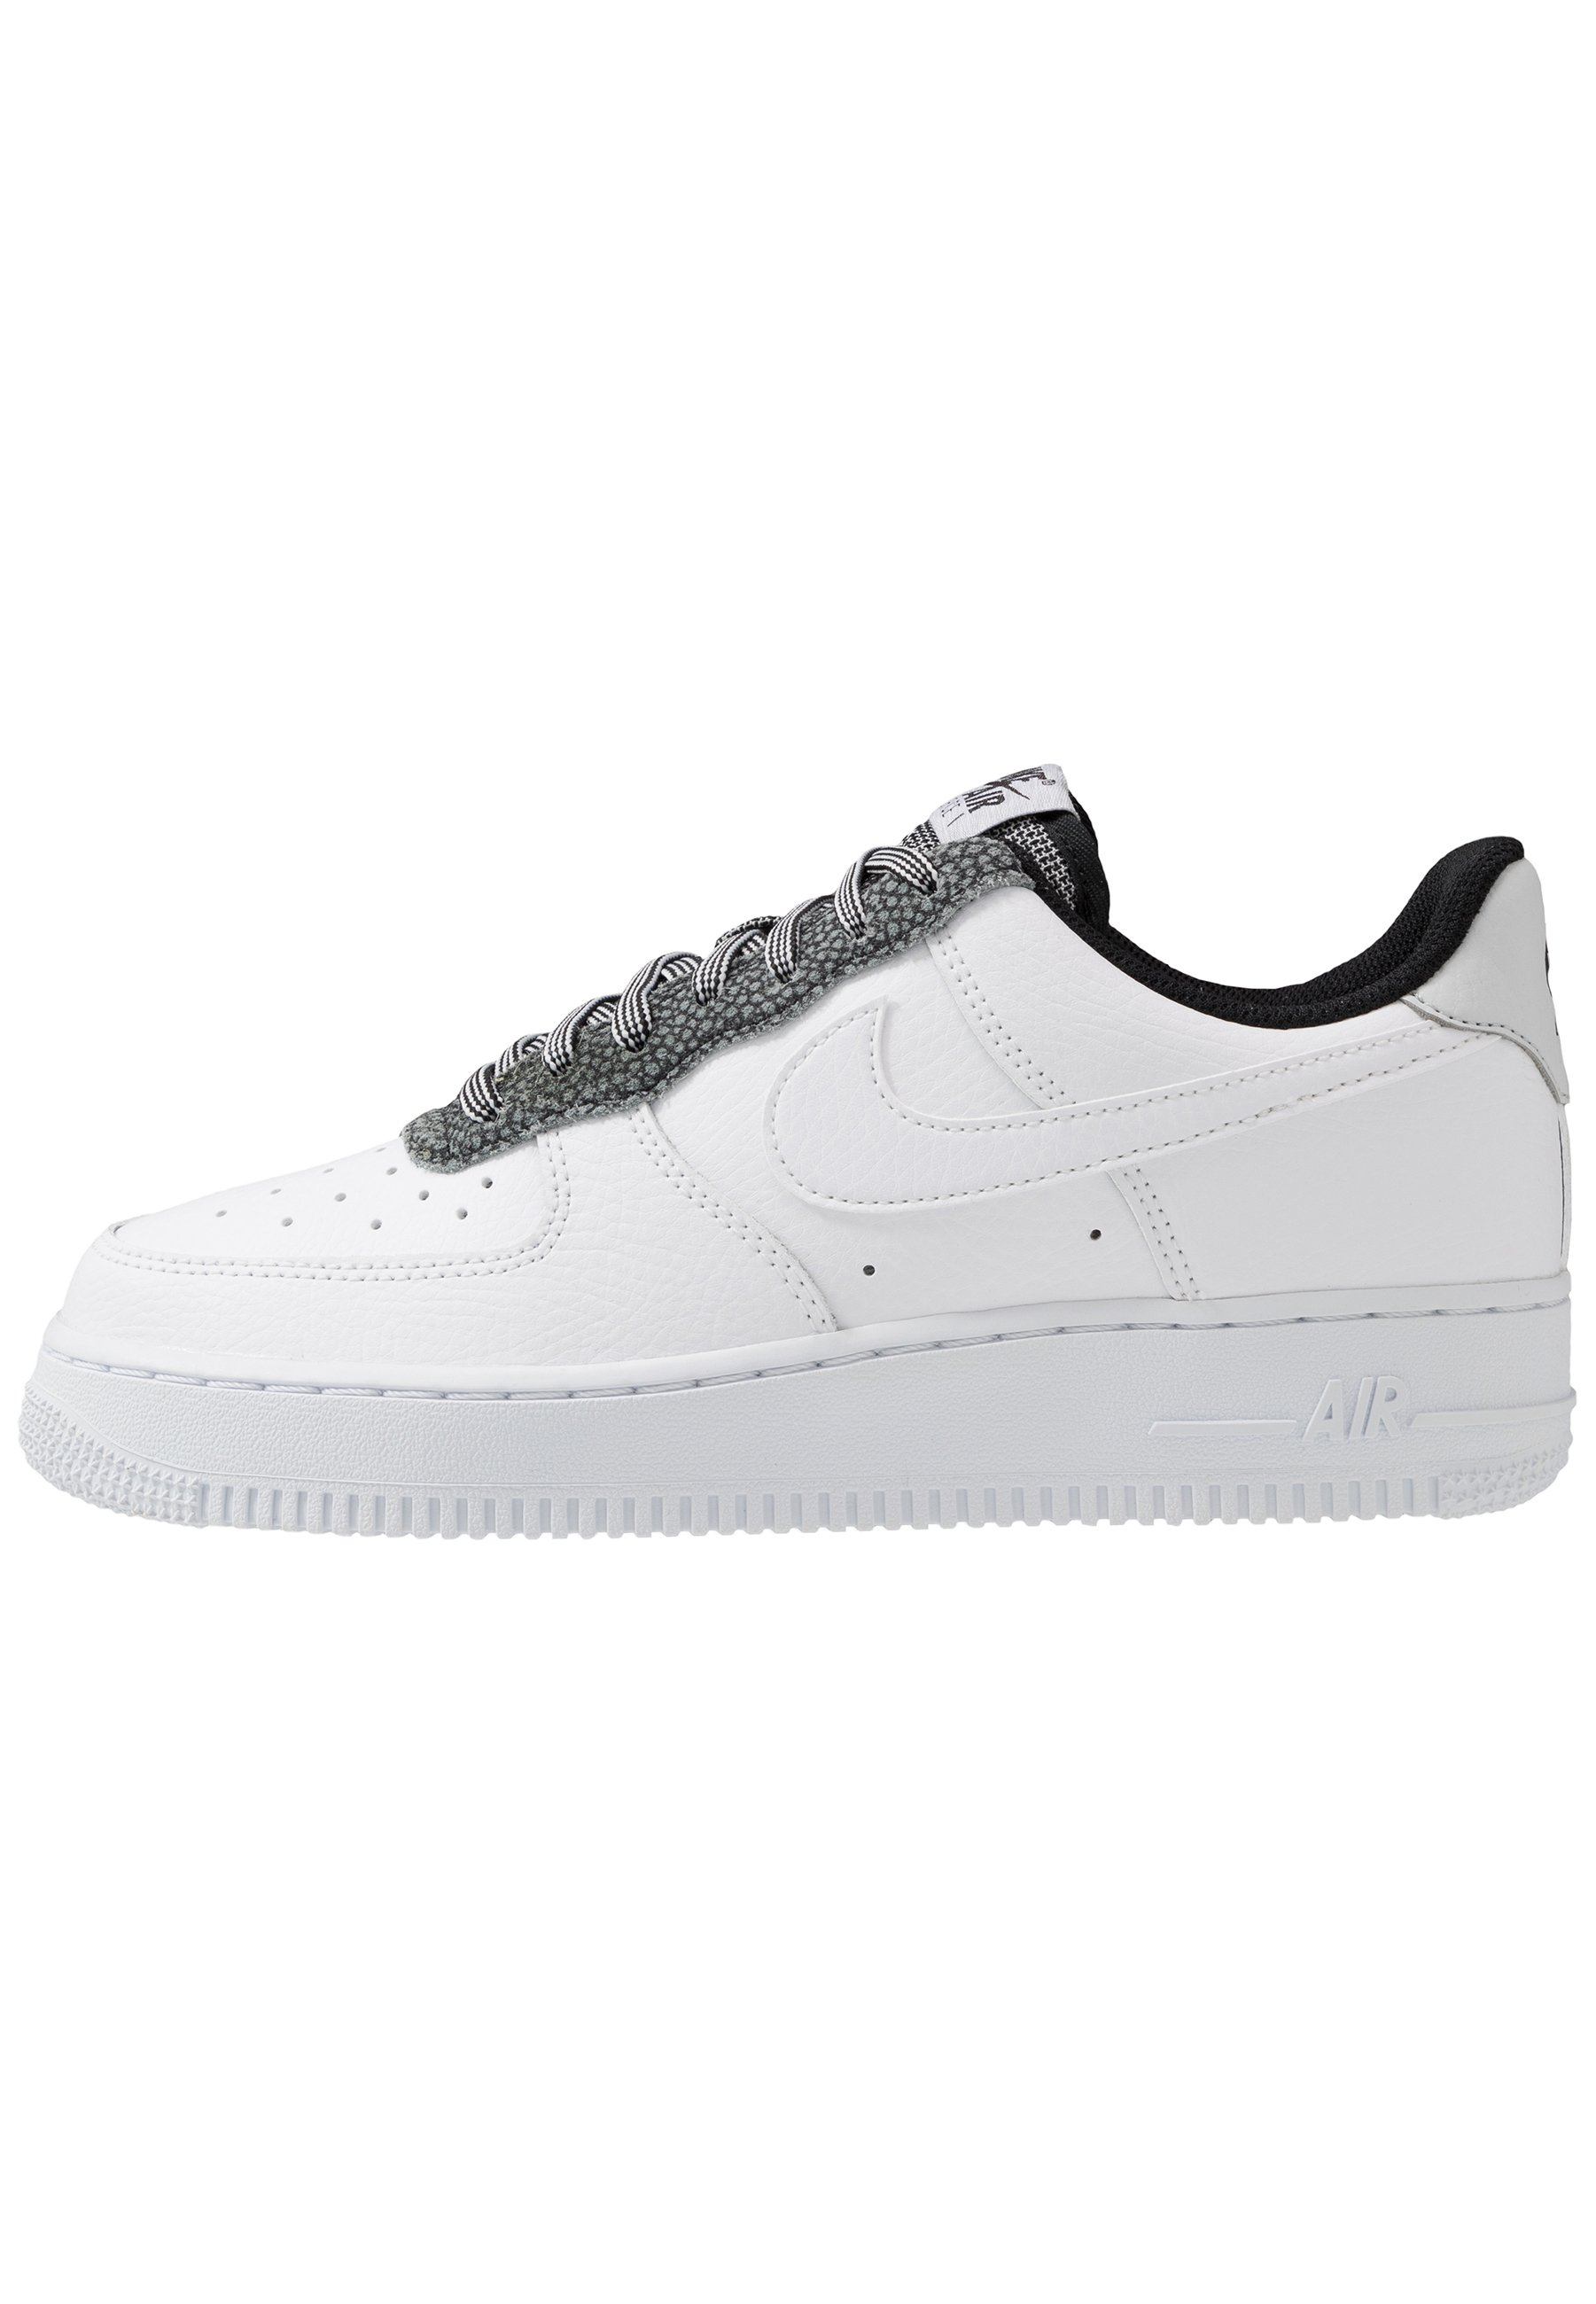 Sneakers Alte Nike Uomo | AIR FORCE 1 '07 LV8 Wolf Grey